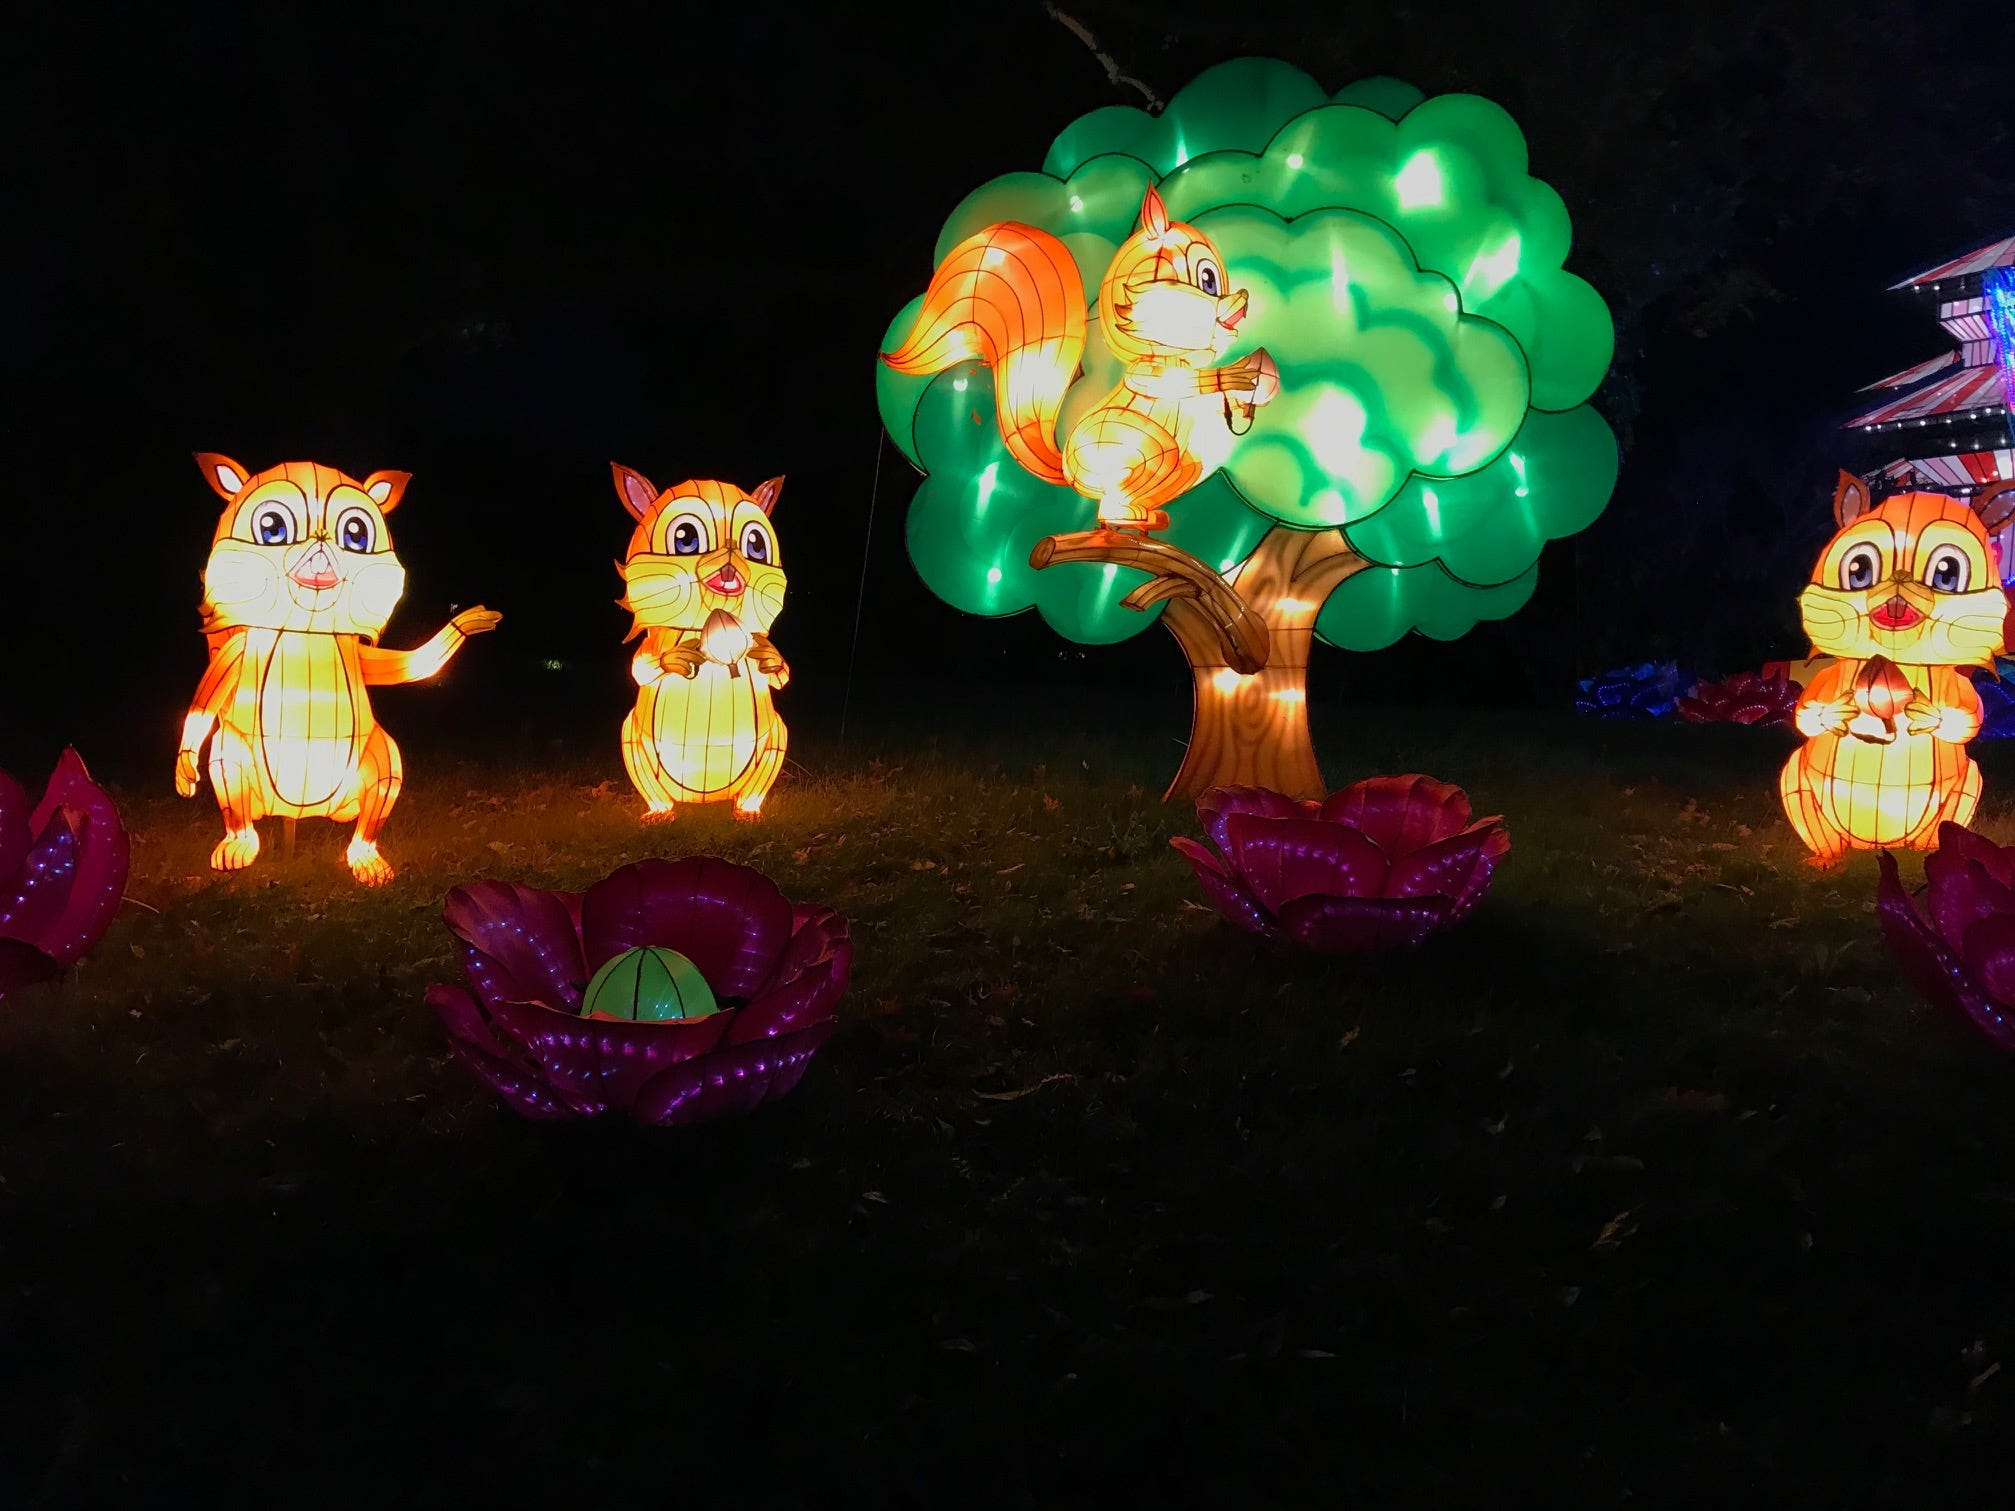 Squirrel Land is a cute display at the 2018 China Lights lantern festival. Children will like this display just as they will enjoy an interactive exhibit at the end of the festival on the grounds of the Boerner Botanical Gardens.